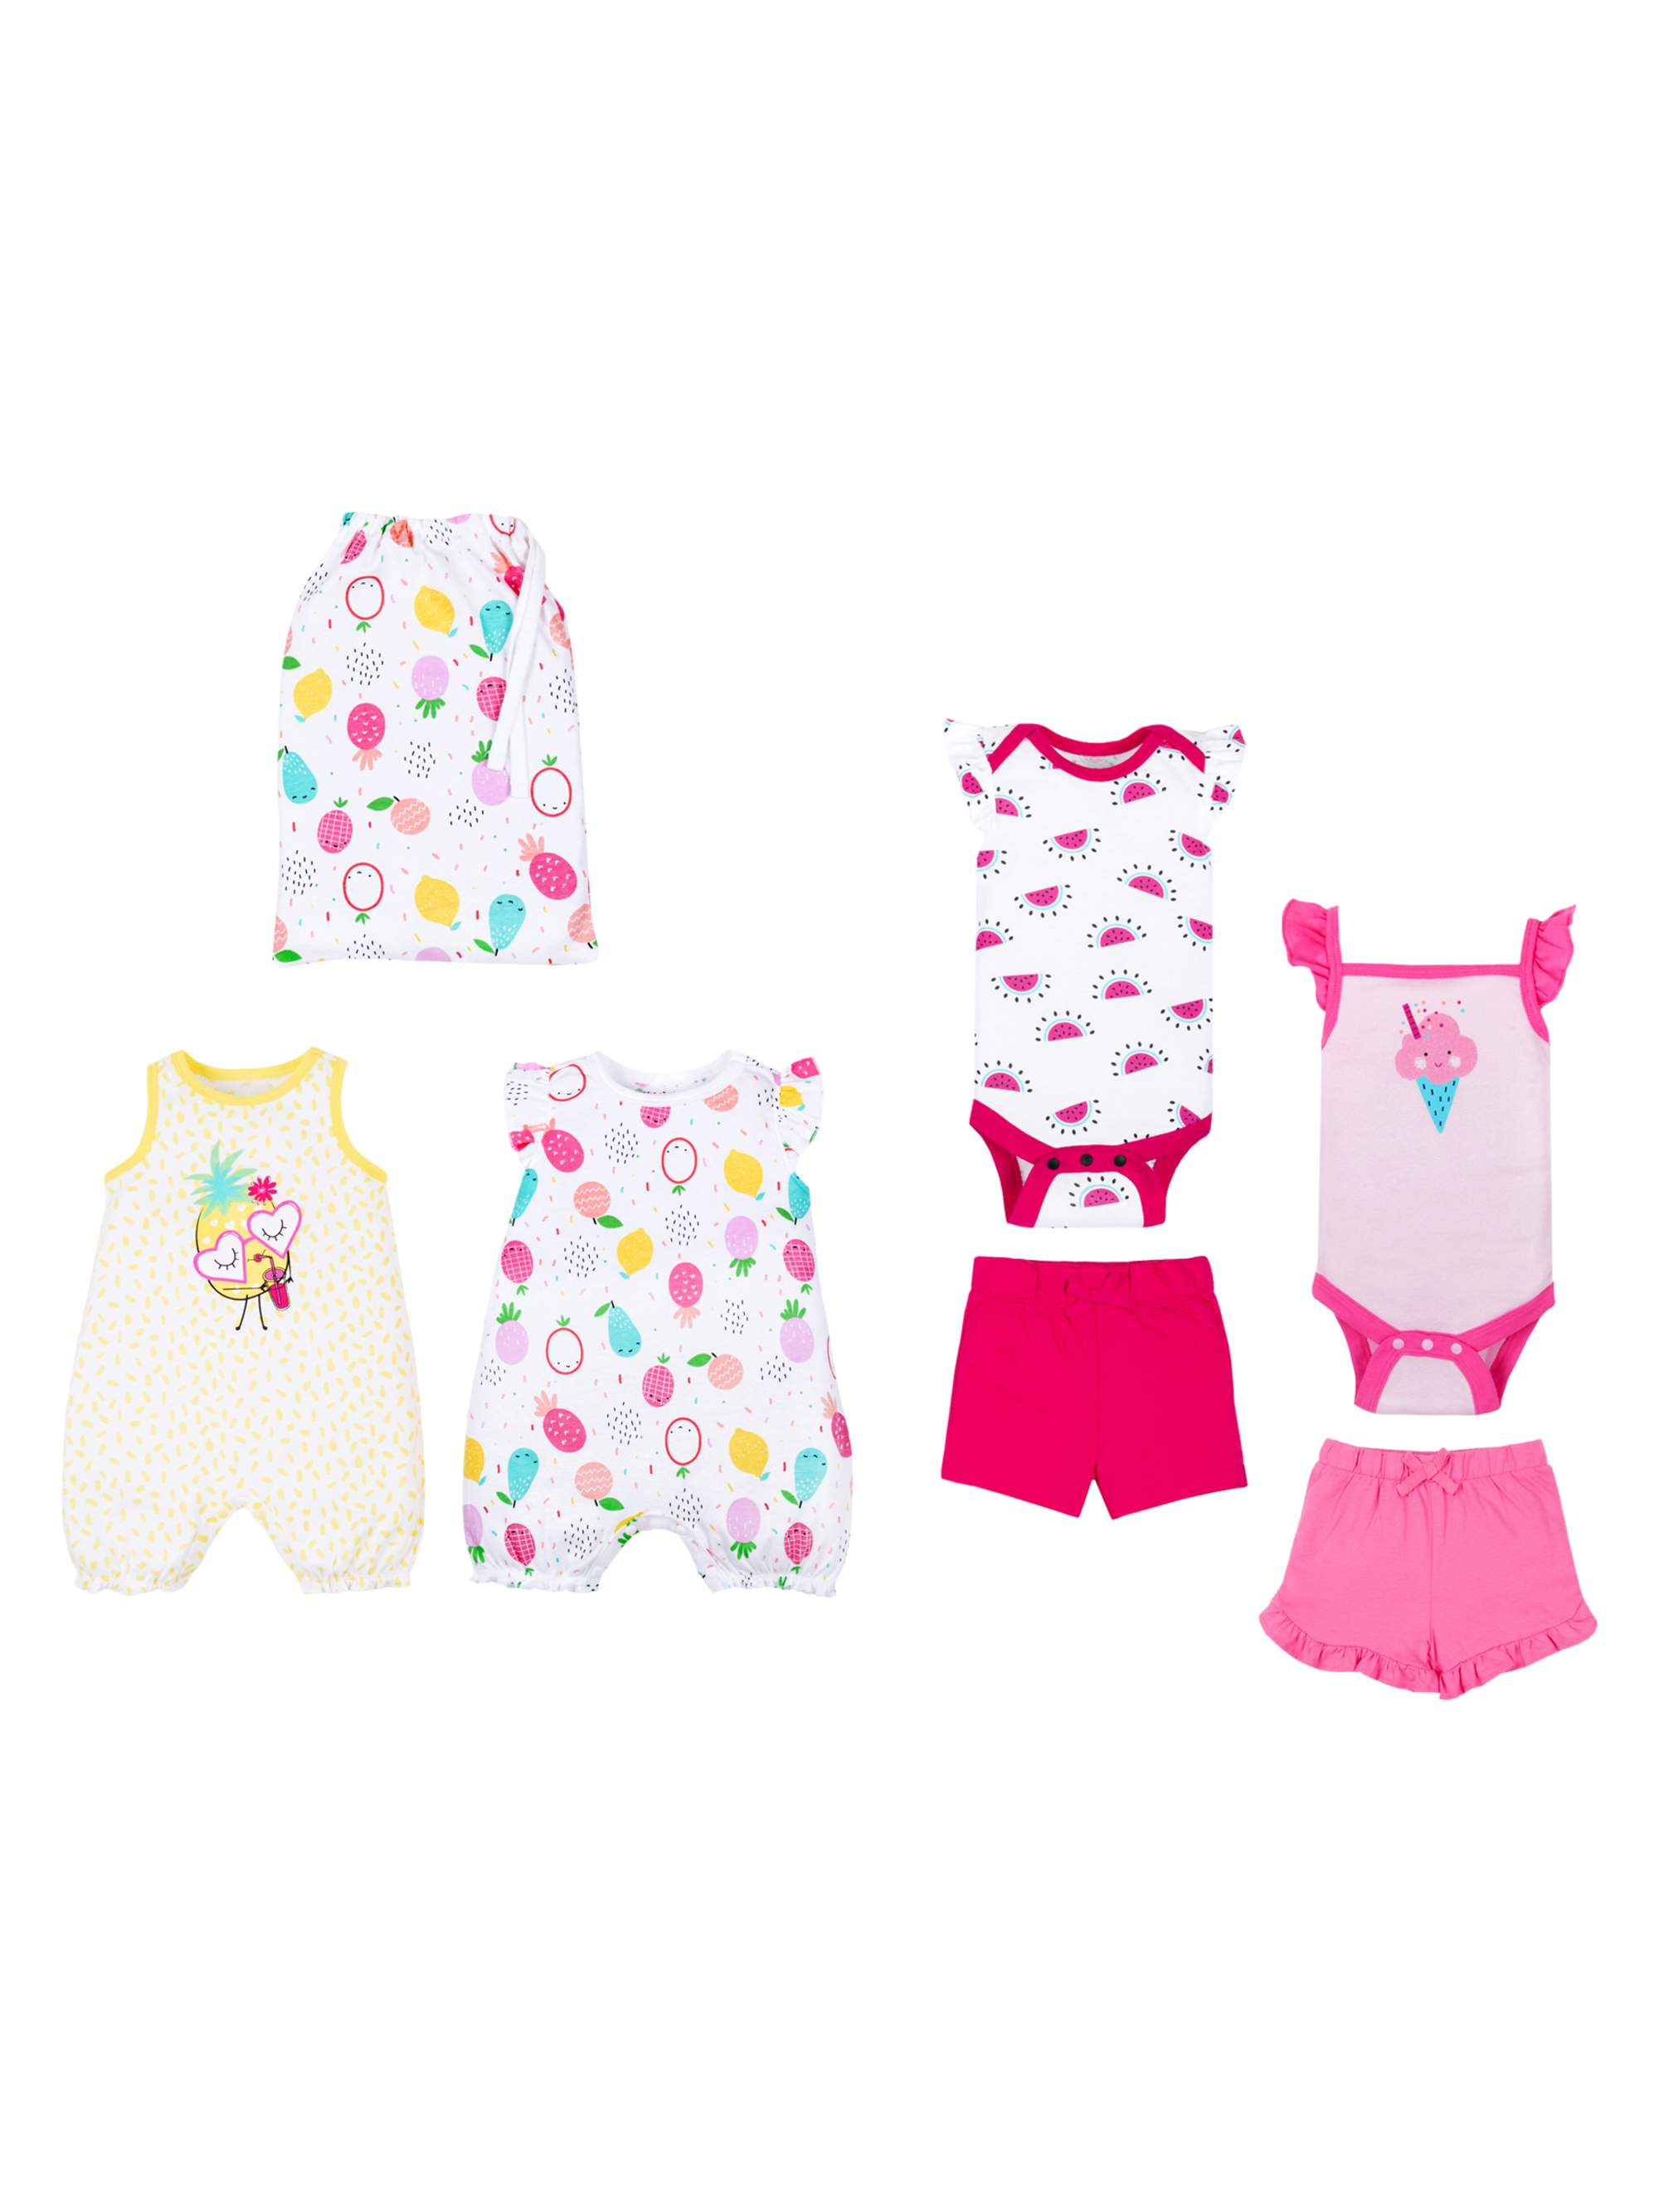 100% Organic Cotton Star-Pack Mix 'n Match Outfits, 6pc Gift Bag Set (Baby Girls)